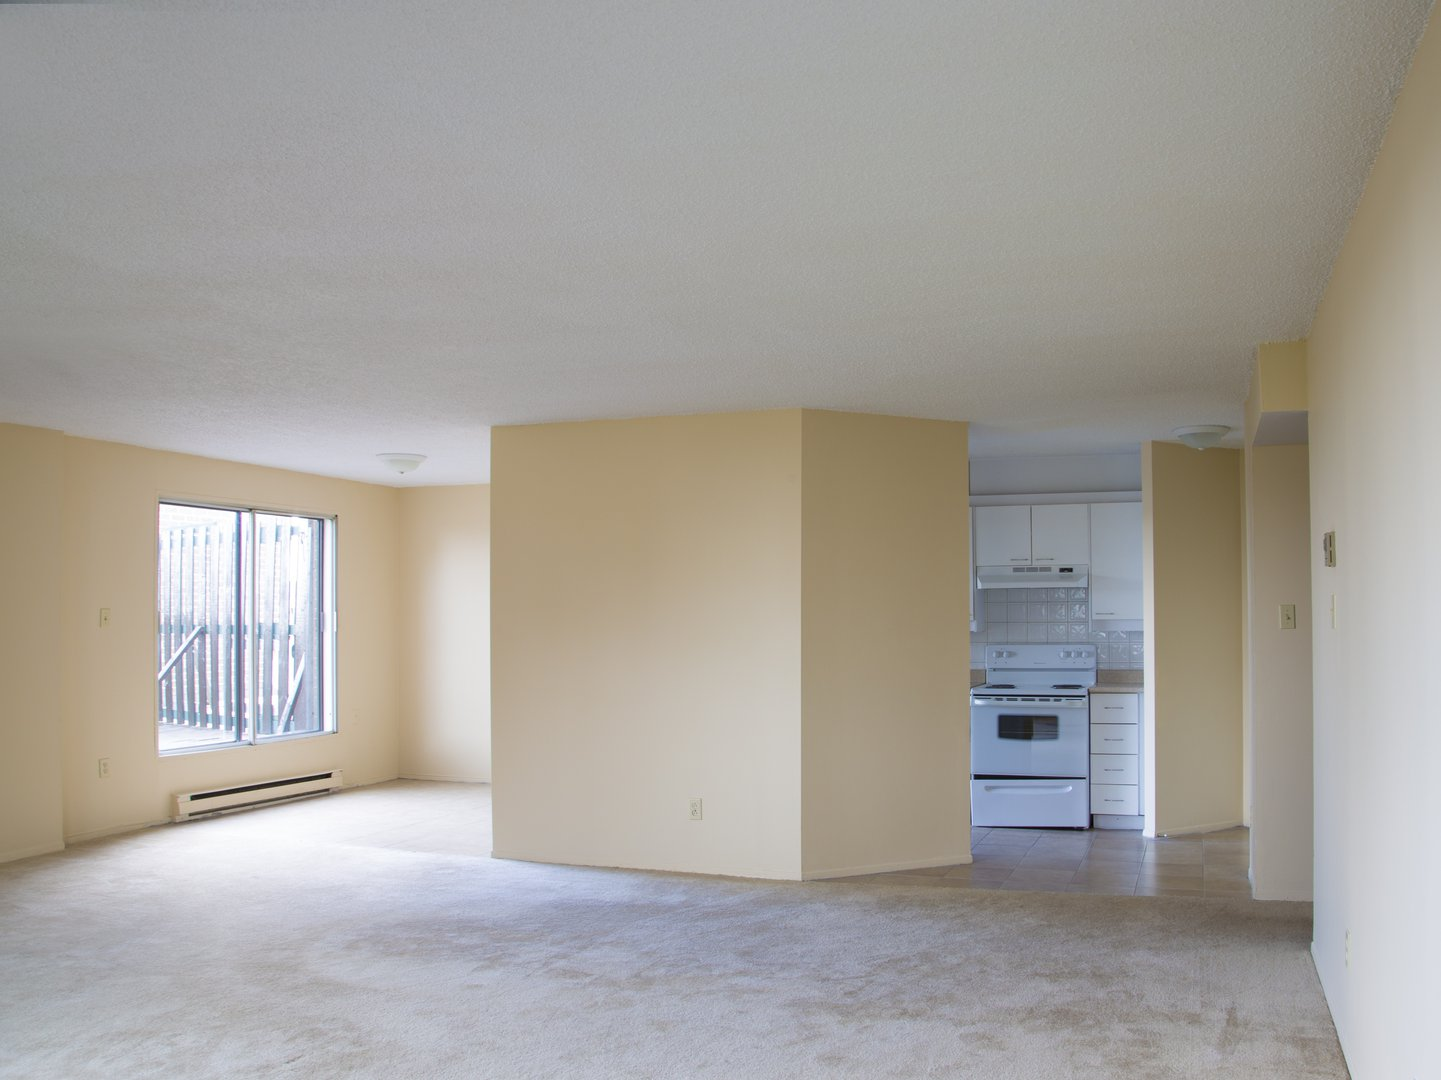 High-Rise Apartment for rent at 50 Quintin, suite 111, Ville Saint-Laurent, QC. This is the empty room with natural light and carpet.